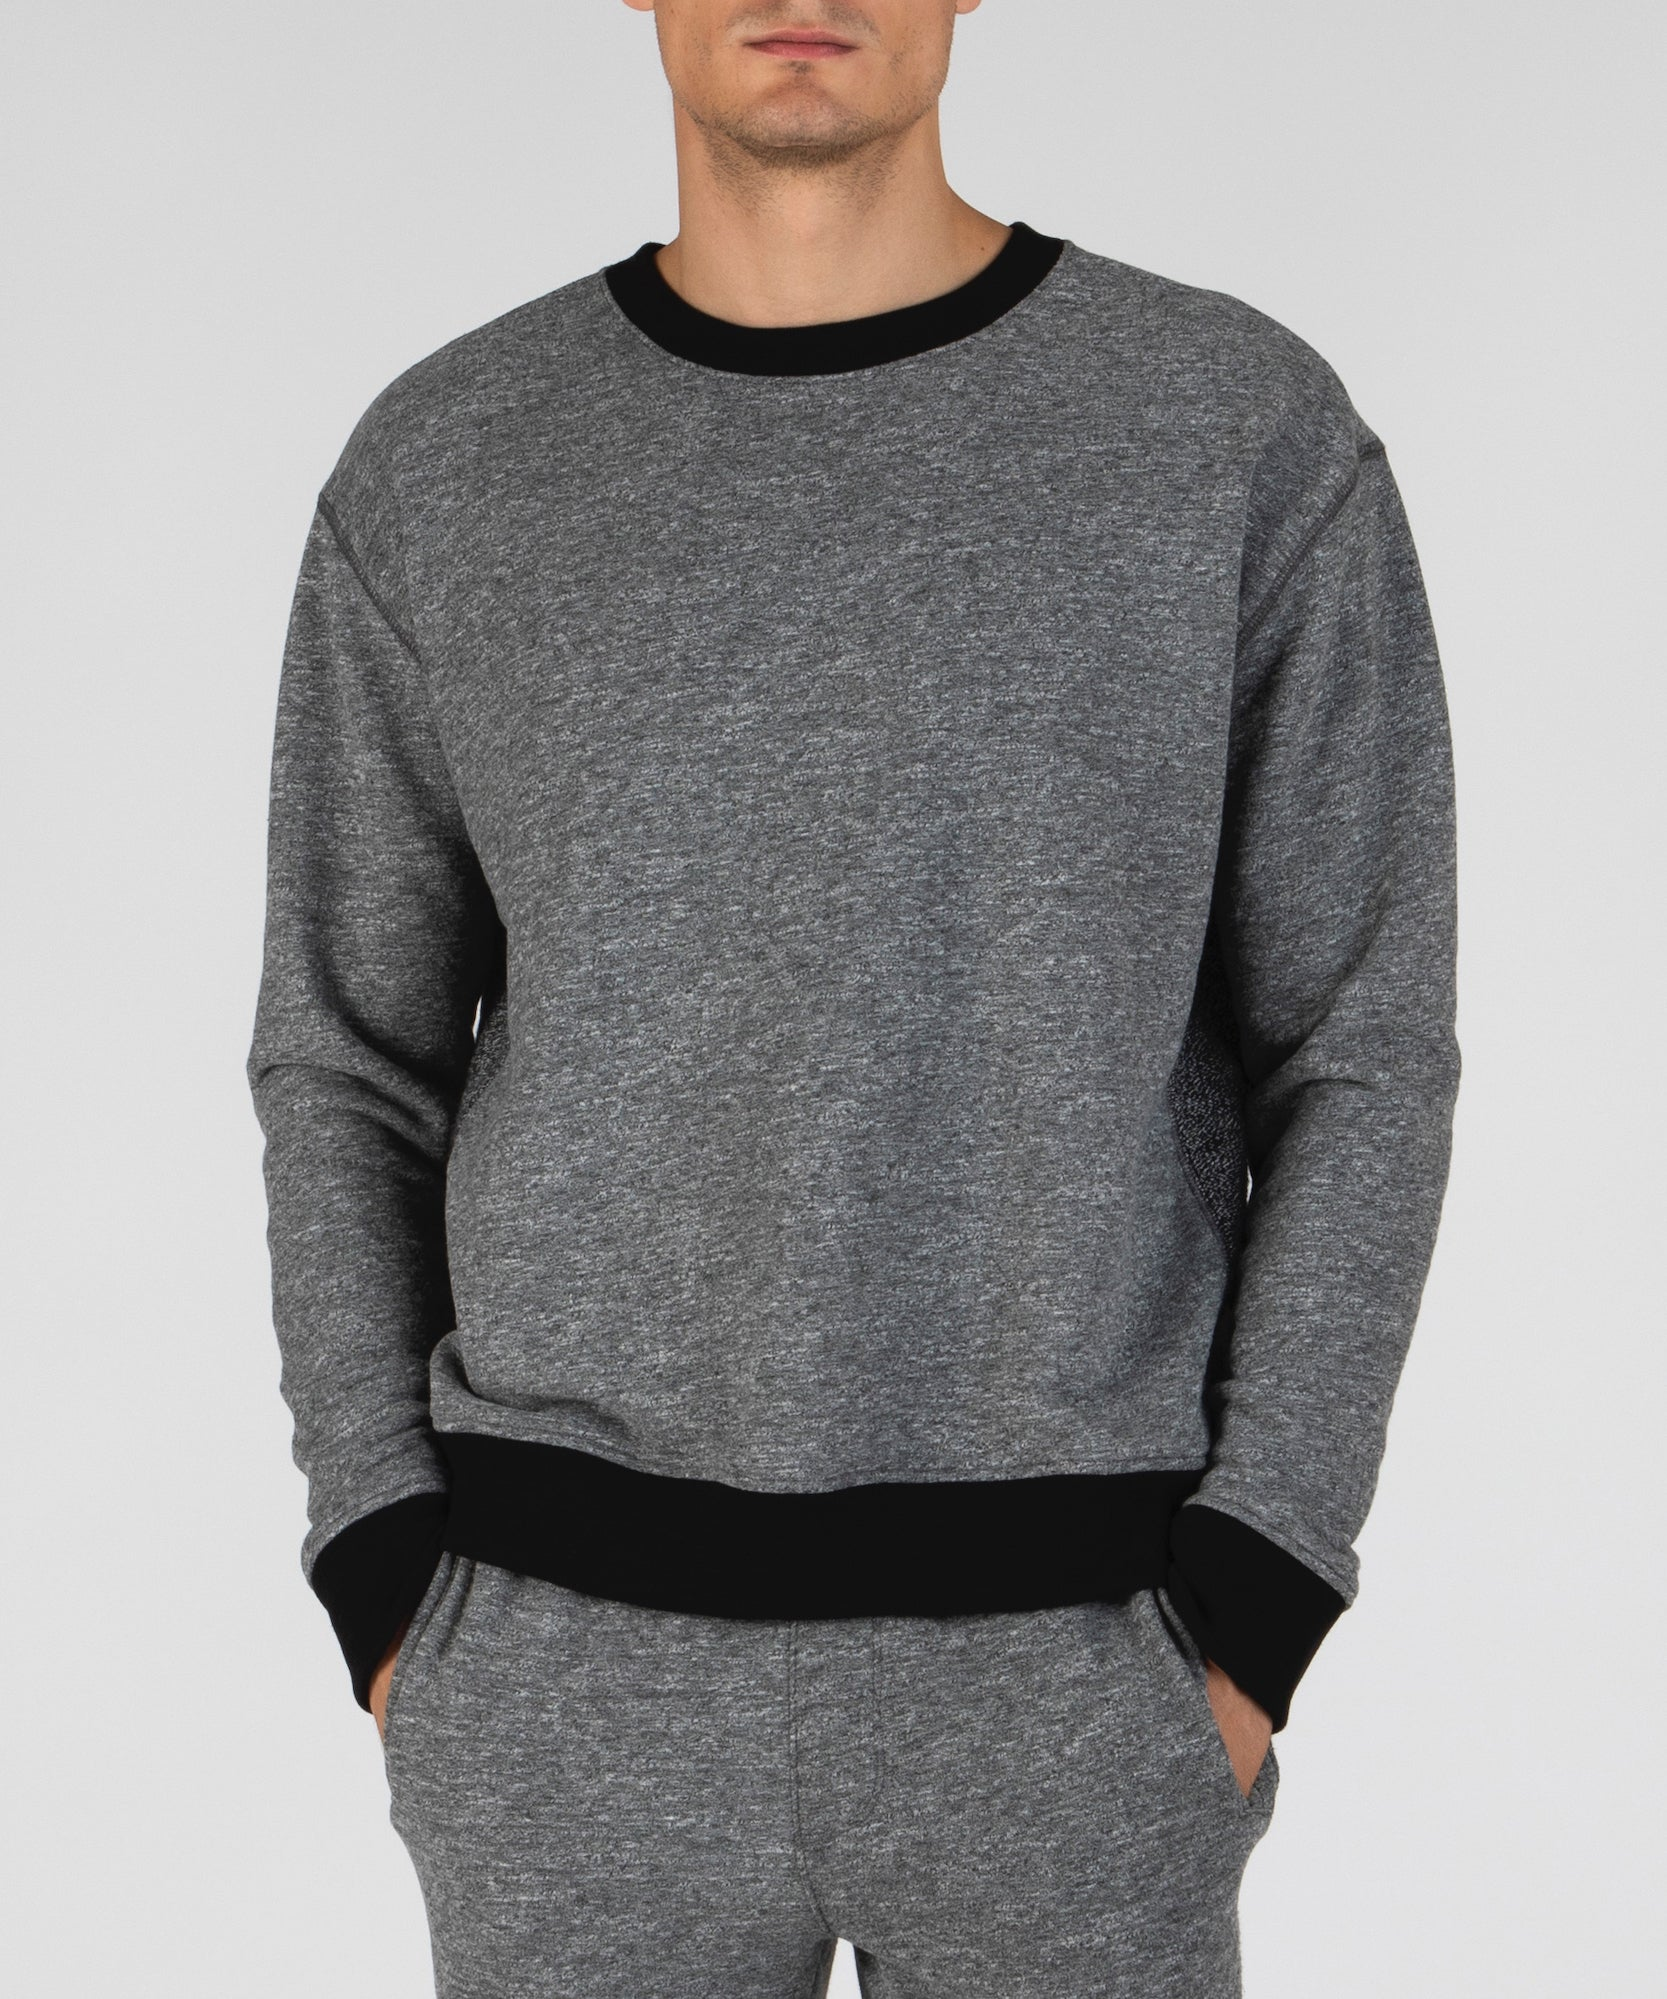 Heather Charcoal French Terry Contrast Rib Sweatshirt - Men's Luxe Loungewear by ATM Anthony Thomas Melillo